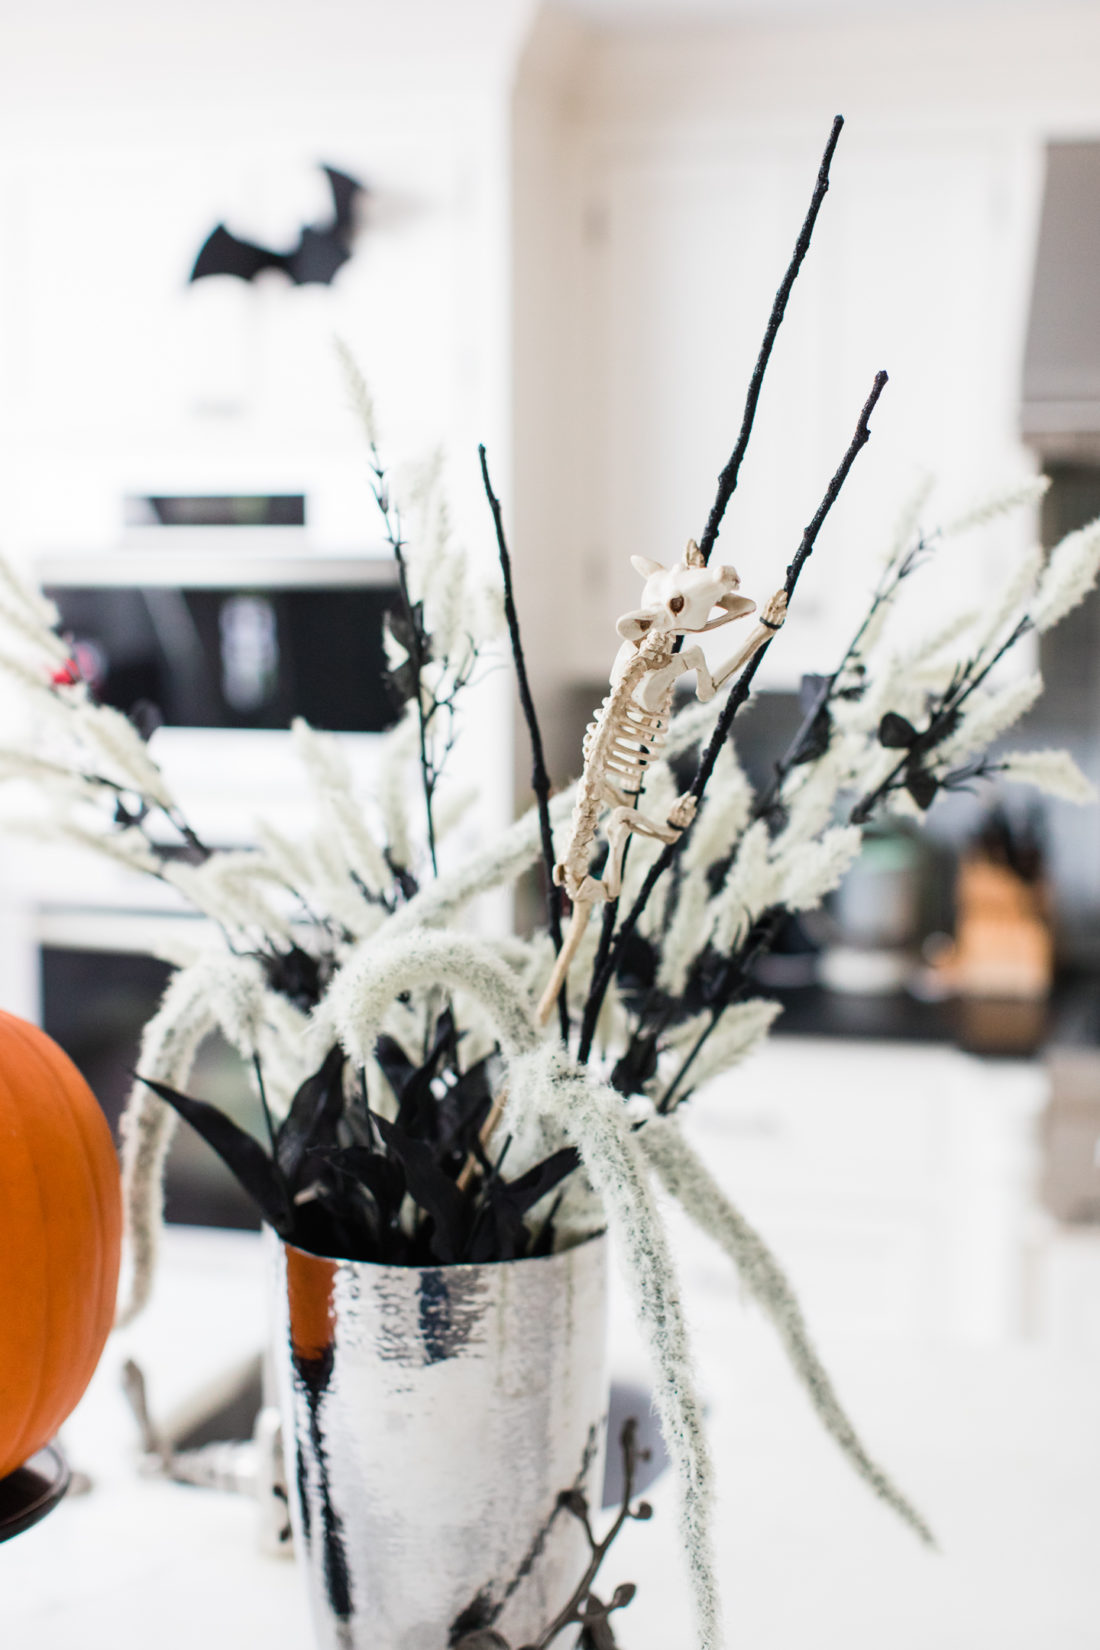 A mouse skeleton climbs up the reeds in a halloween themed flower display in Eva Amurri Martino's Connecticut kitchen